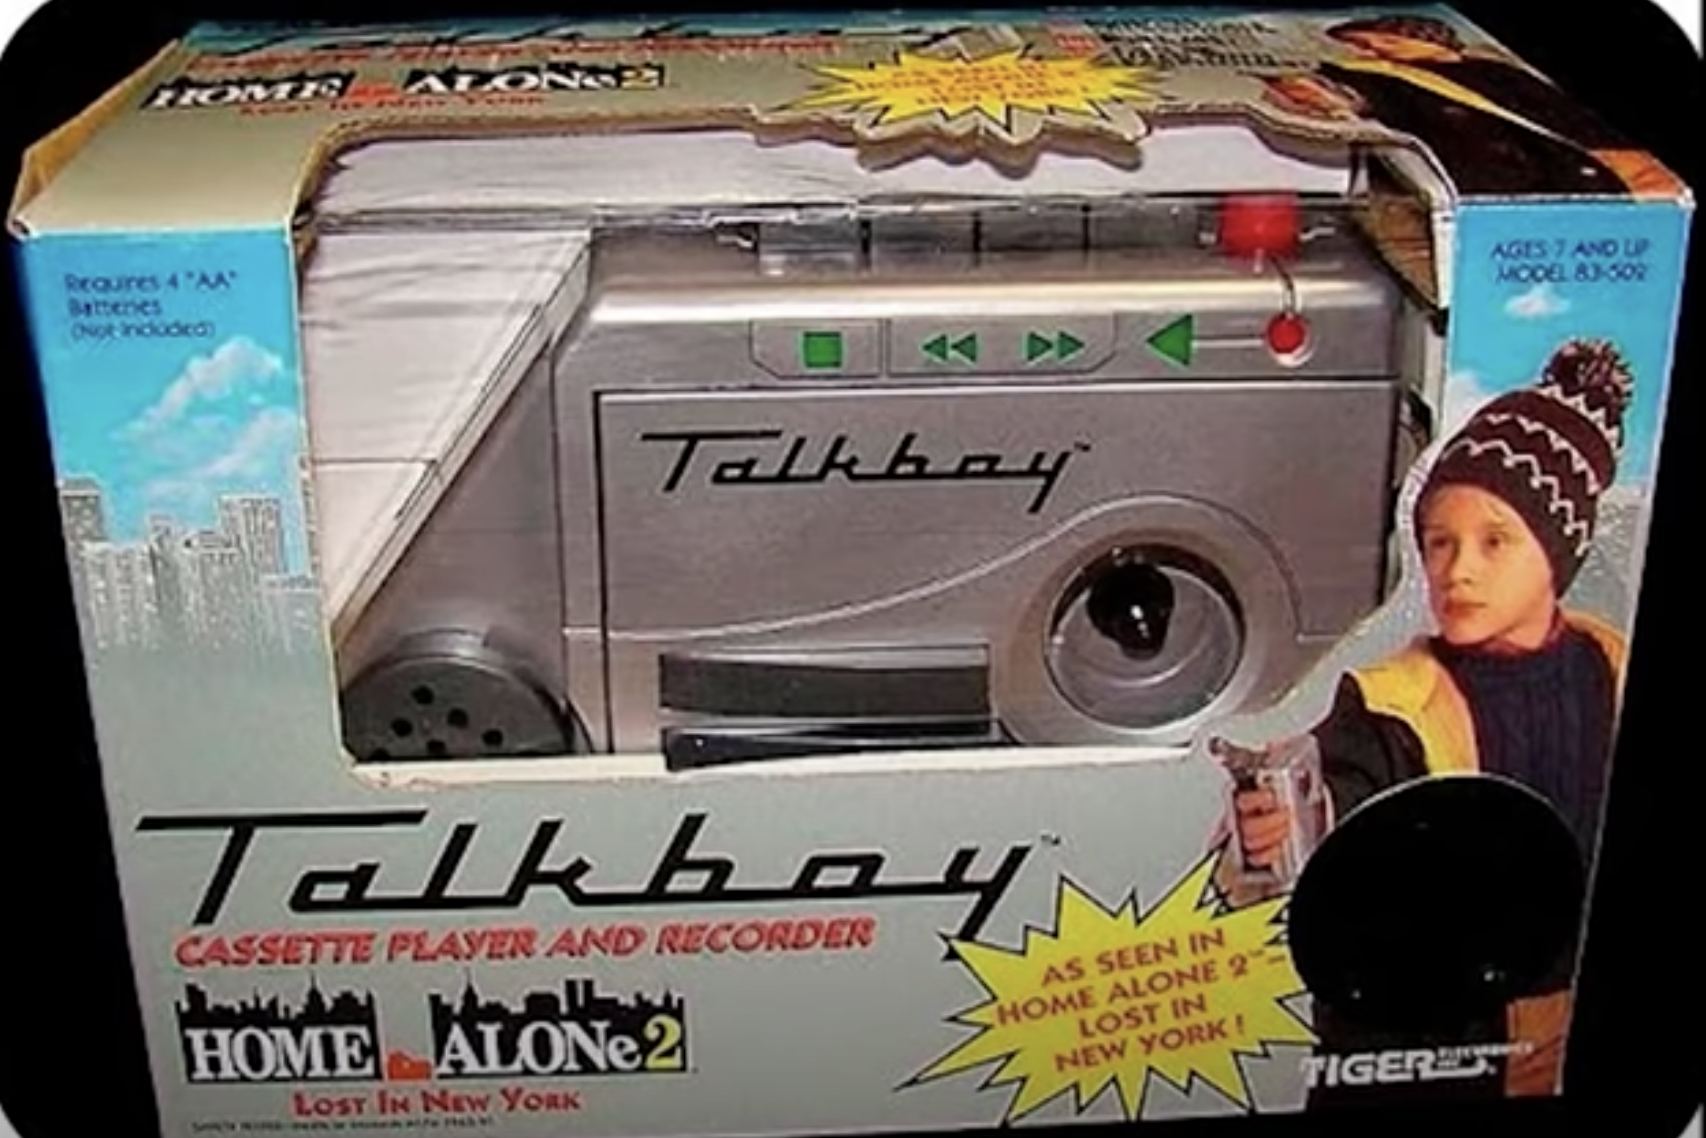 Most Popular Toys of the 90s: Talkboy